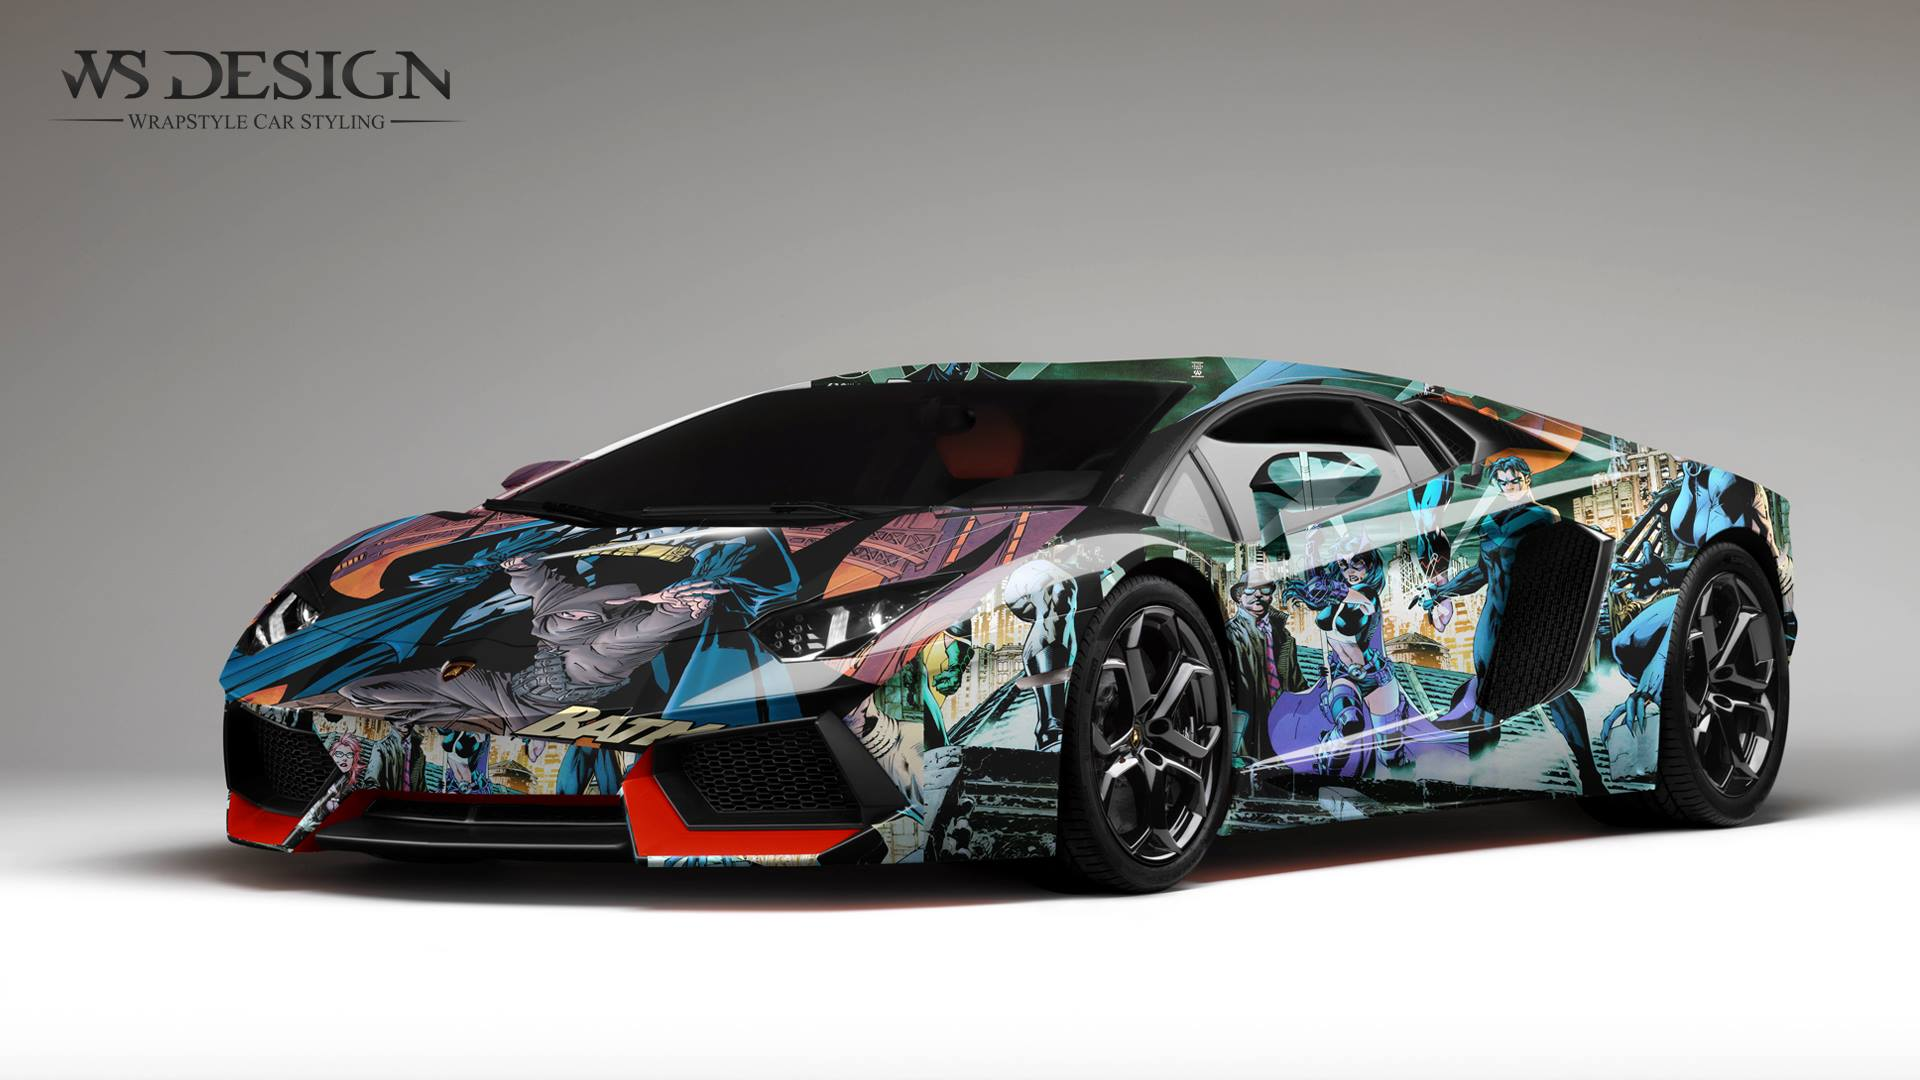 One Owner Car Guy >> Lamborghini Aventador Art Design Wraps by WS Designs - GTspirit